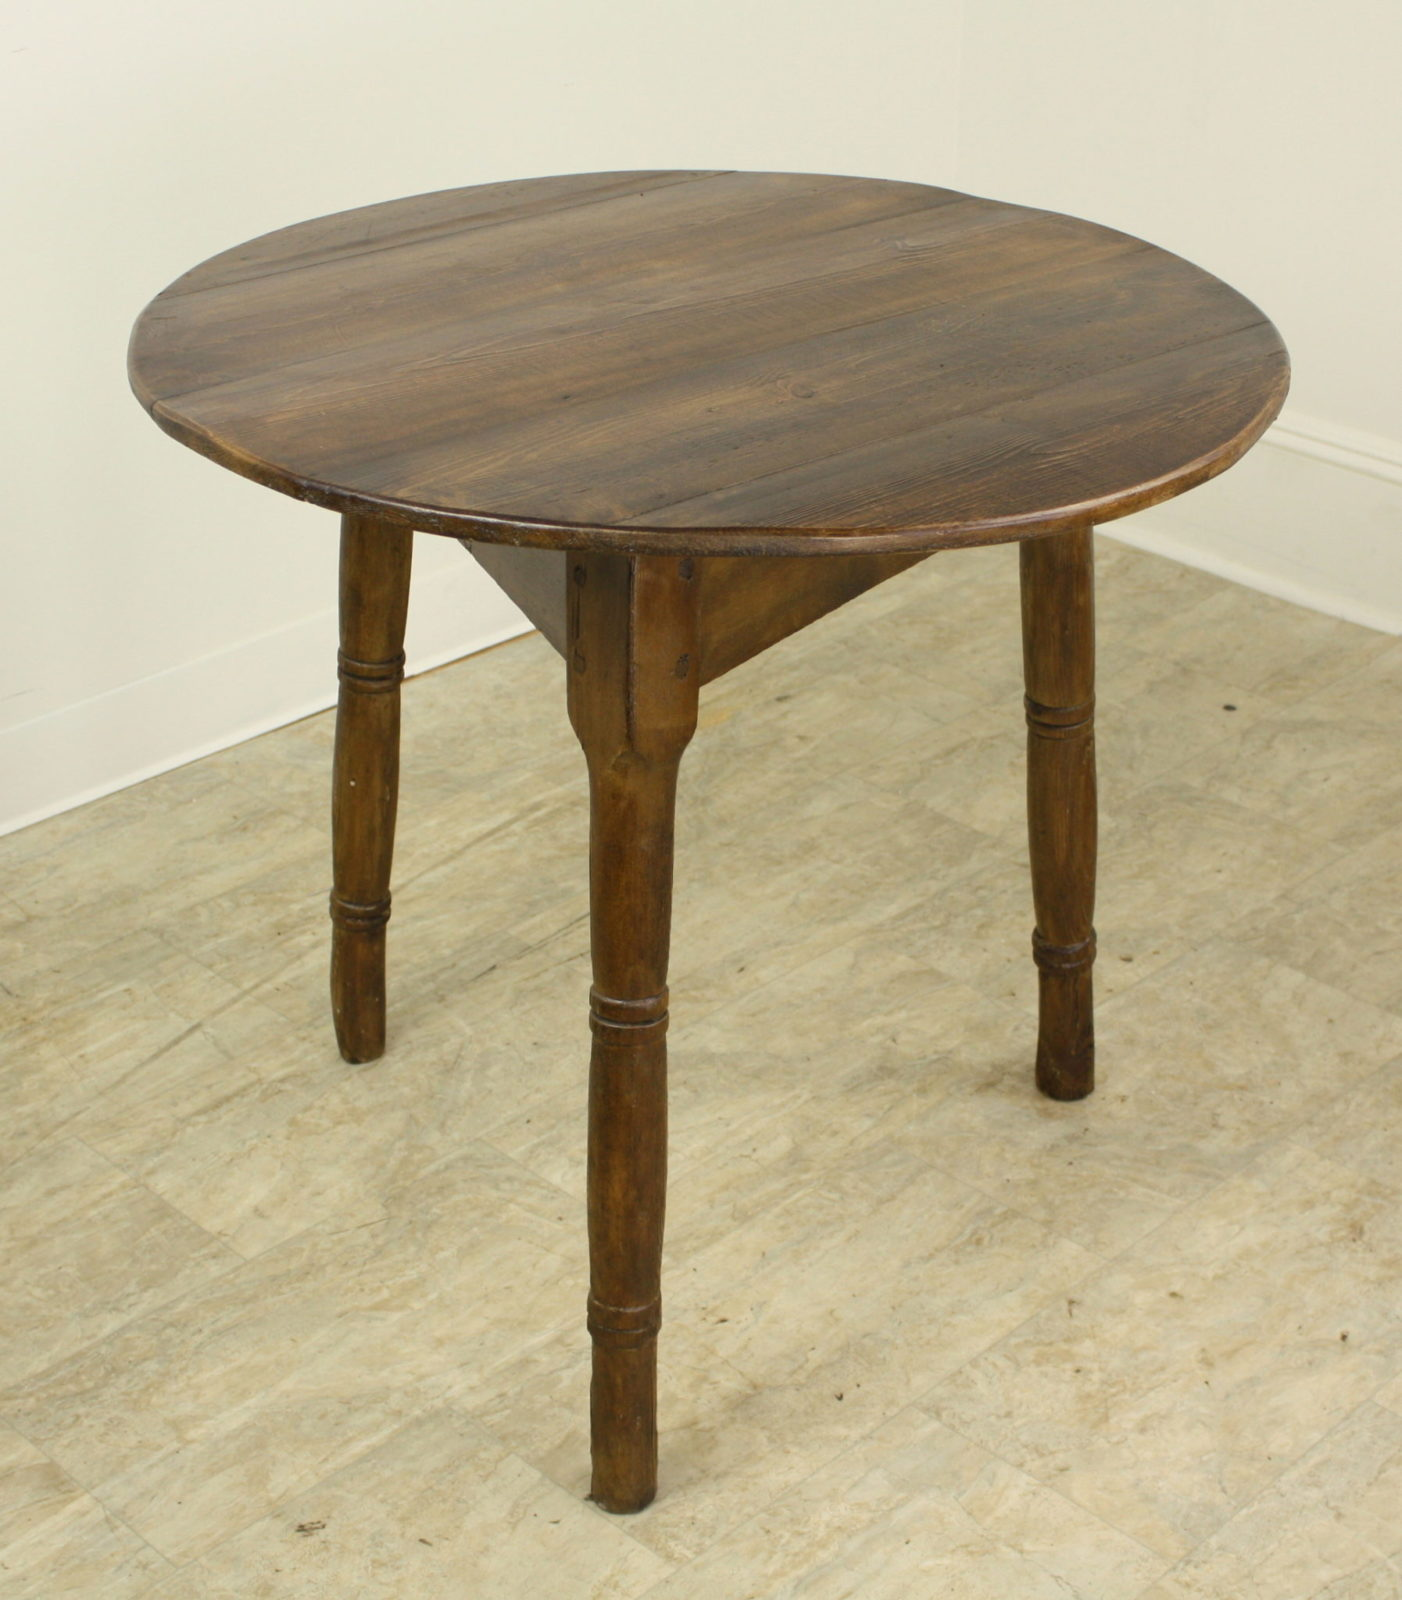 Pine Coffee Table With Turned Legs: Antique Welsh Pine Cricket Table With Turned Legs